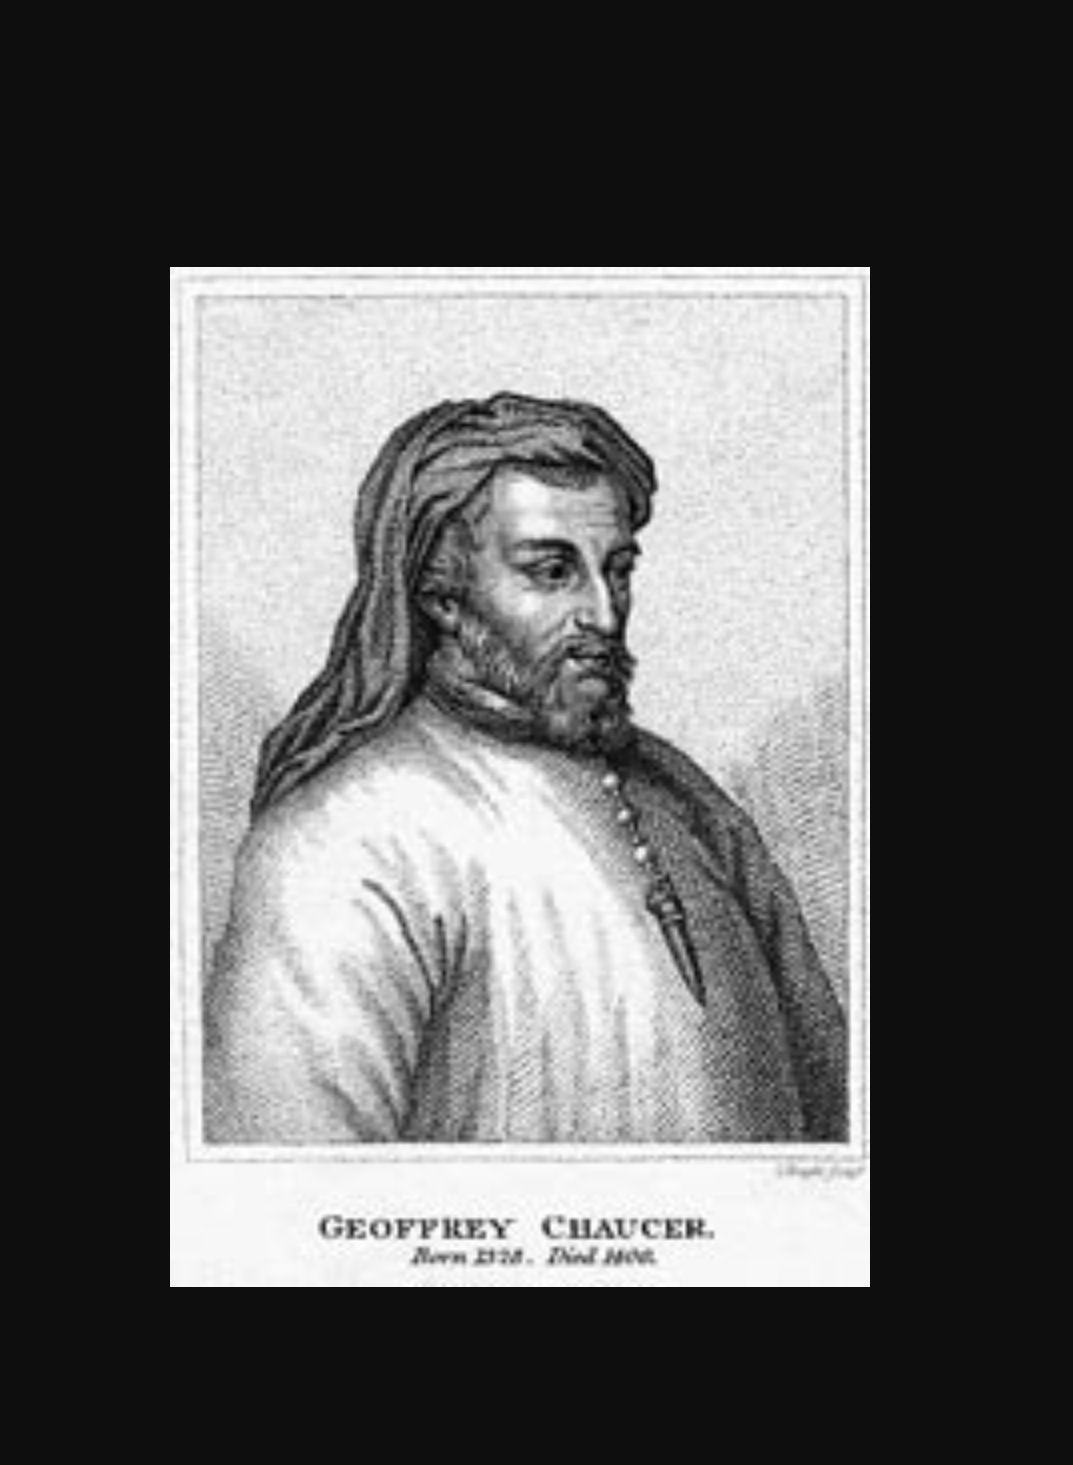 geoffrey chaucer is father of english poetry